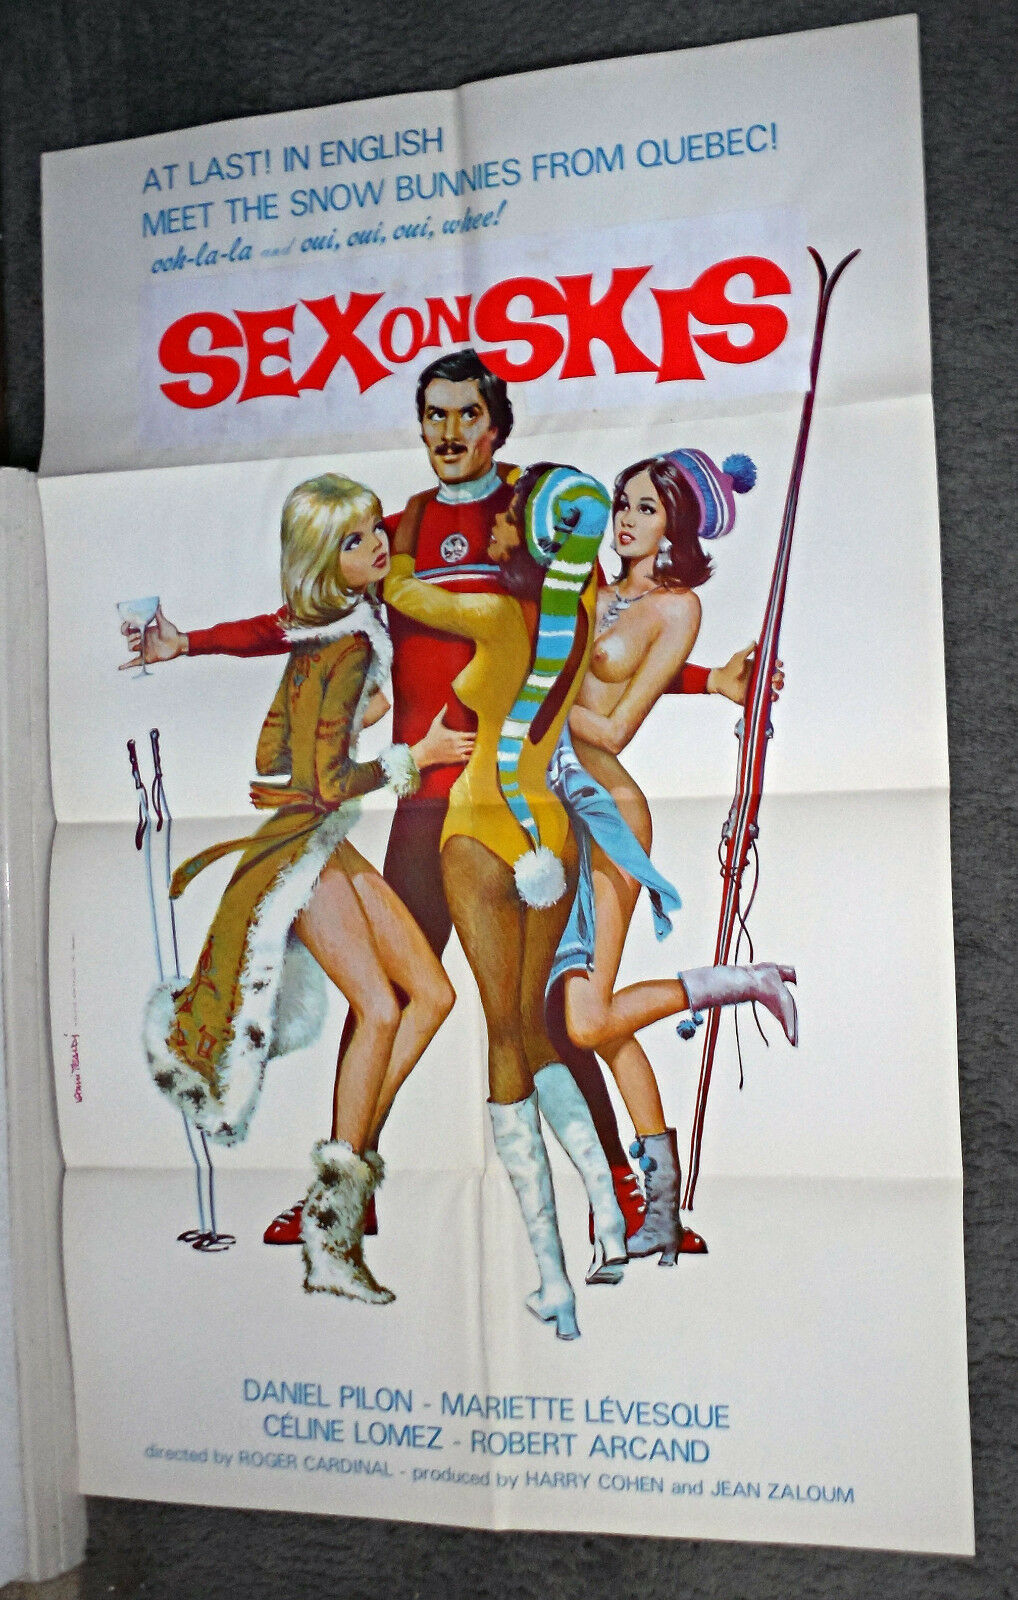 SNOW SKIING SEXY NAKED BABES original 1972 movie poster SEX ON SKIS